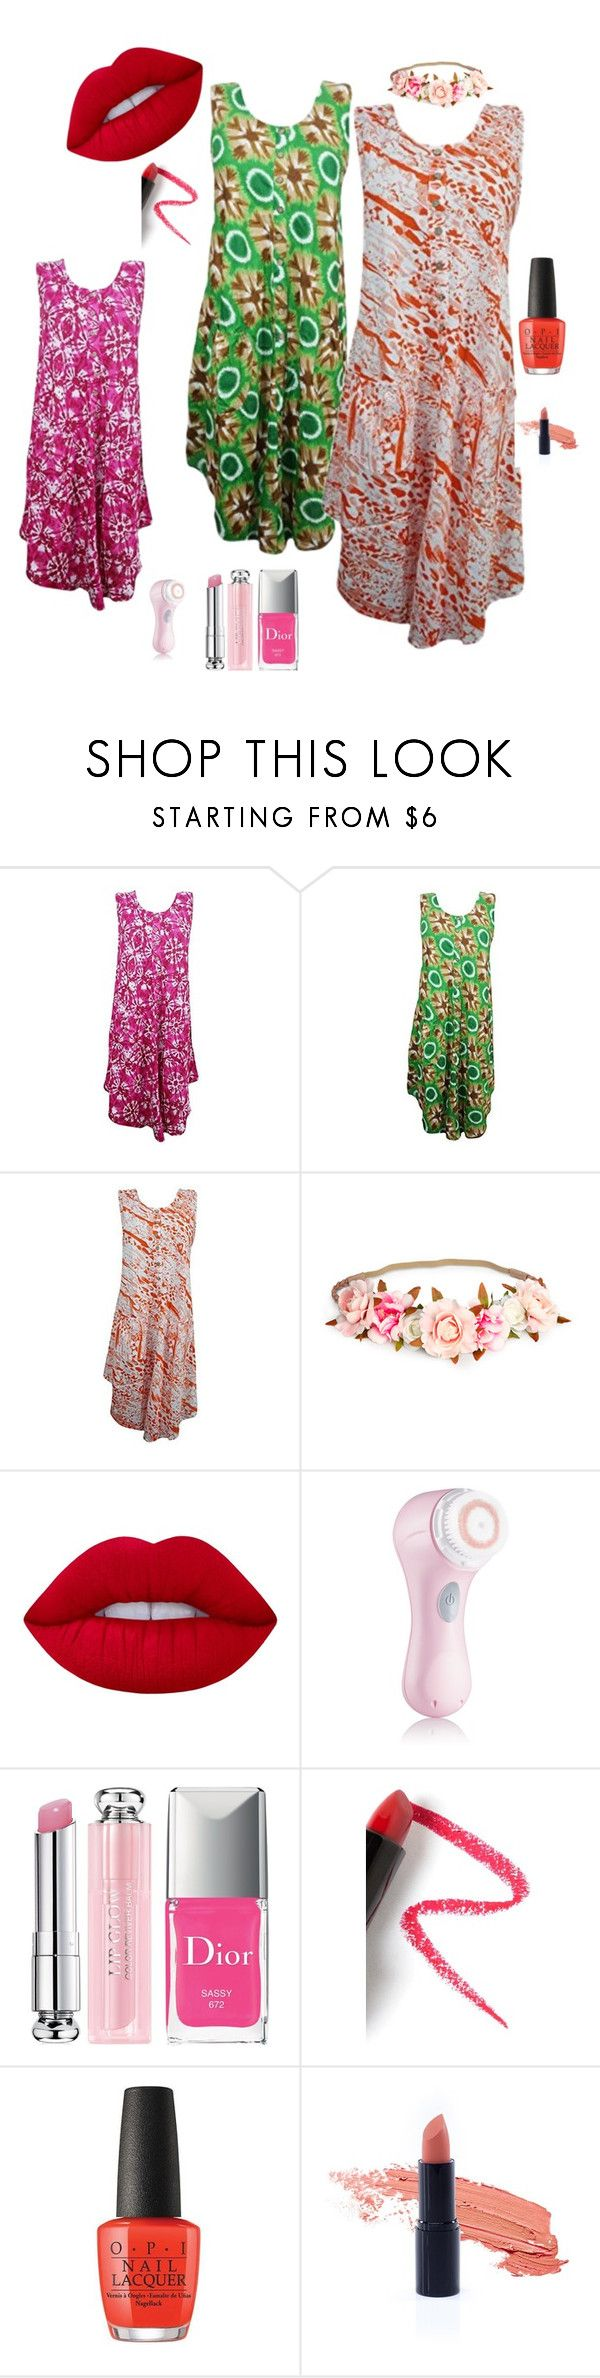 """Beach Dress"" by tarini-tarini ❤ liked on Polyvore featuring Lime Crime, Clarisonic, Christian Dior, Lapcos, gift, dress, beach, hippie and sale"